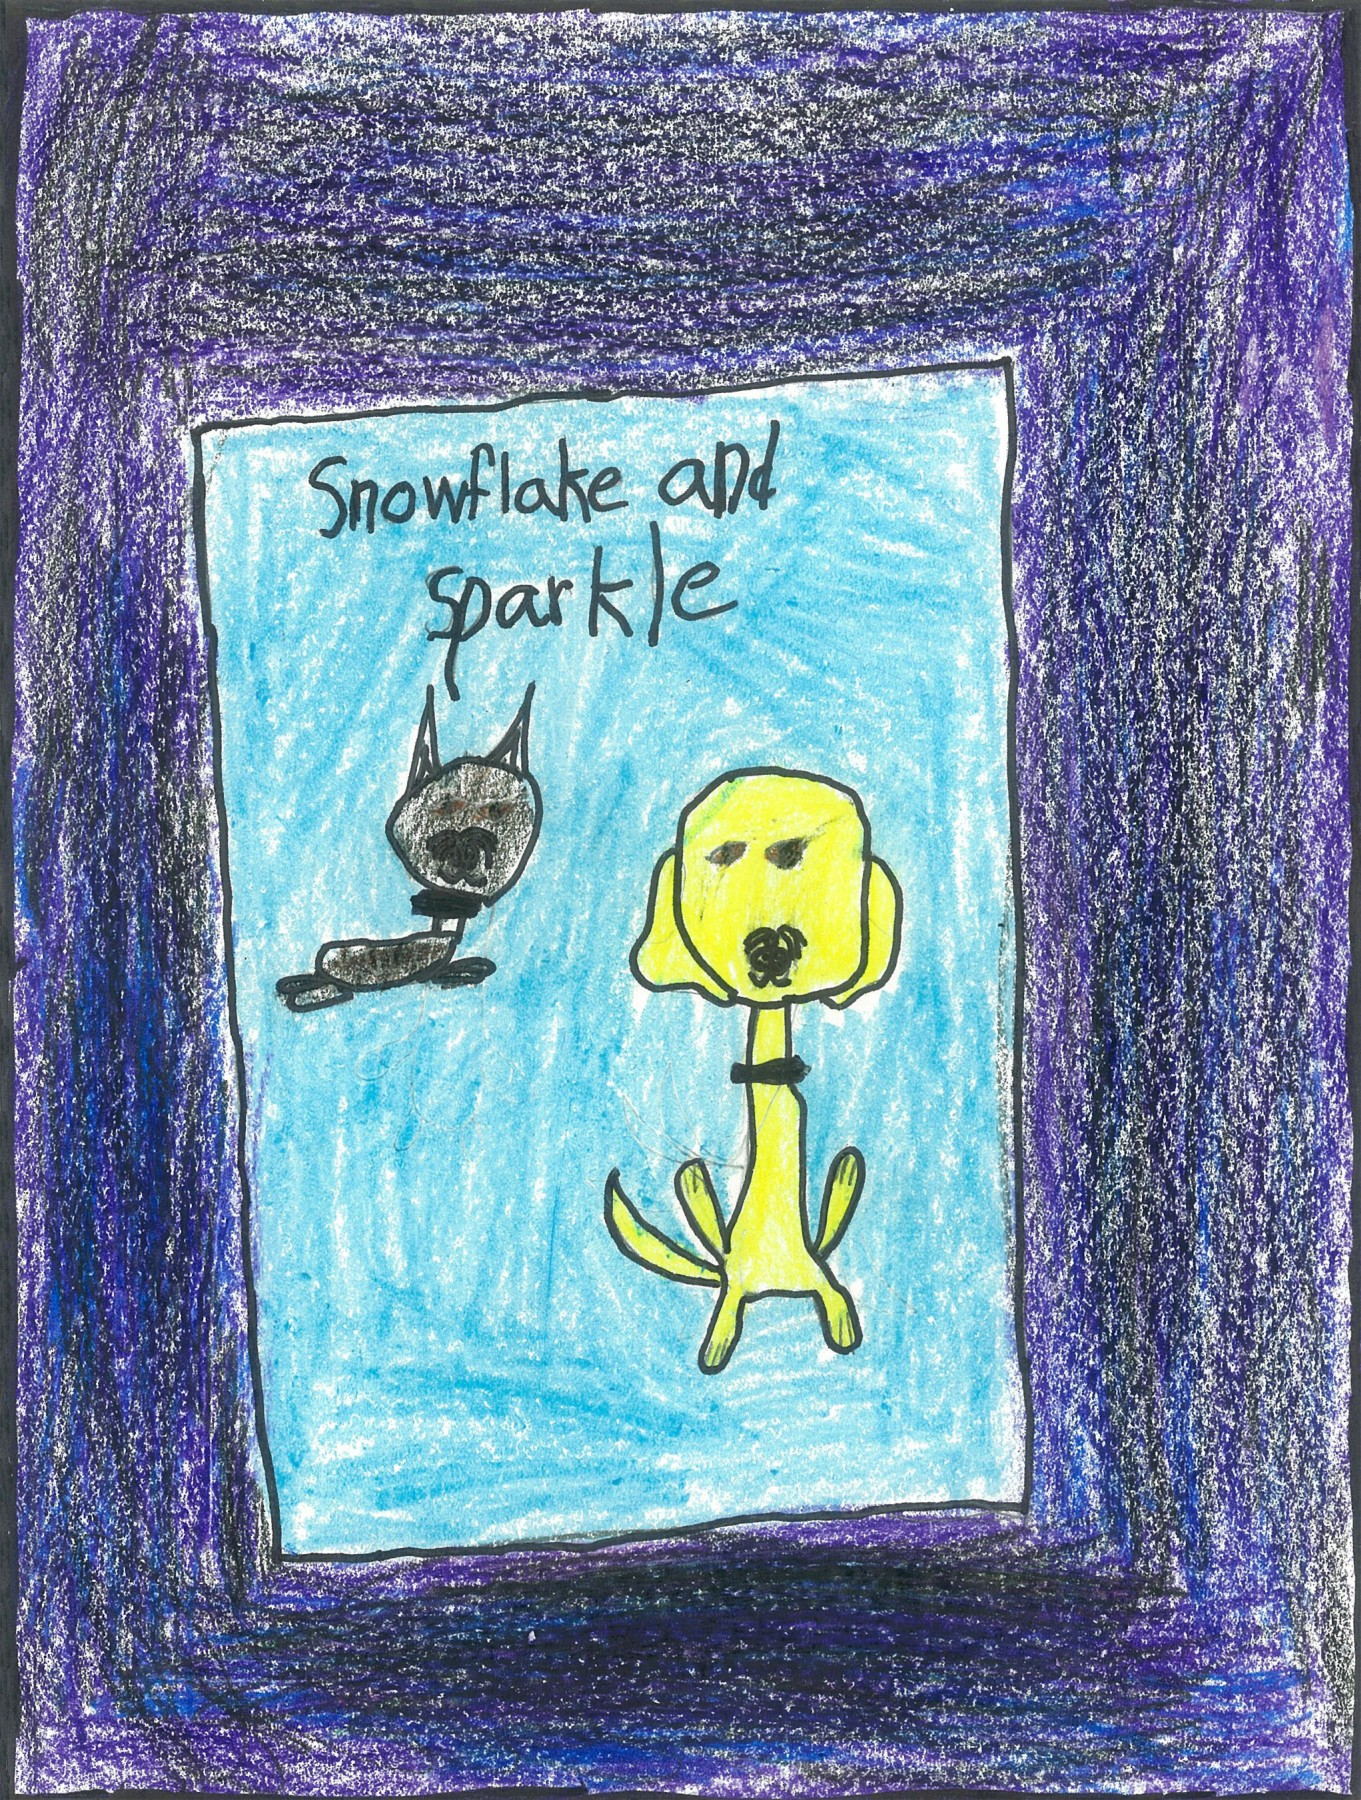 Snowflake and Sparkle, by Aimee Rogers - Age 7